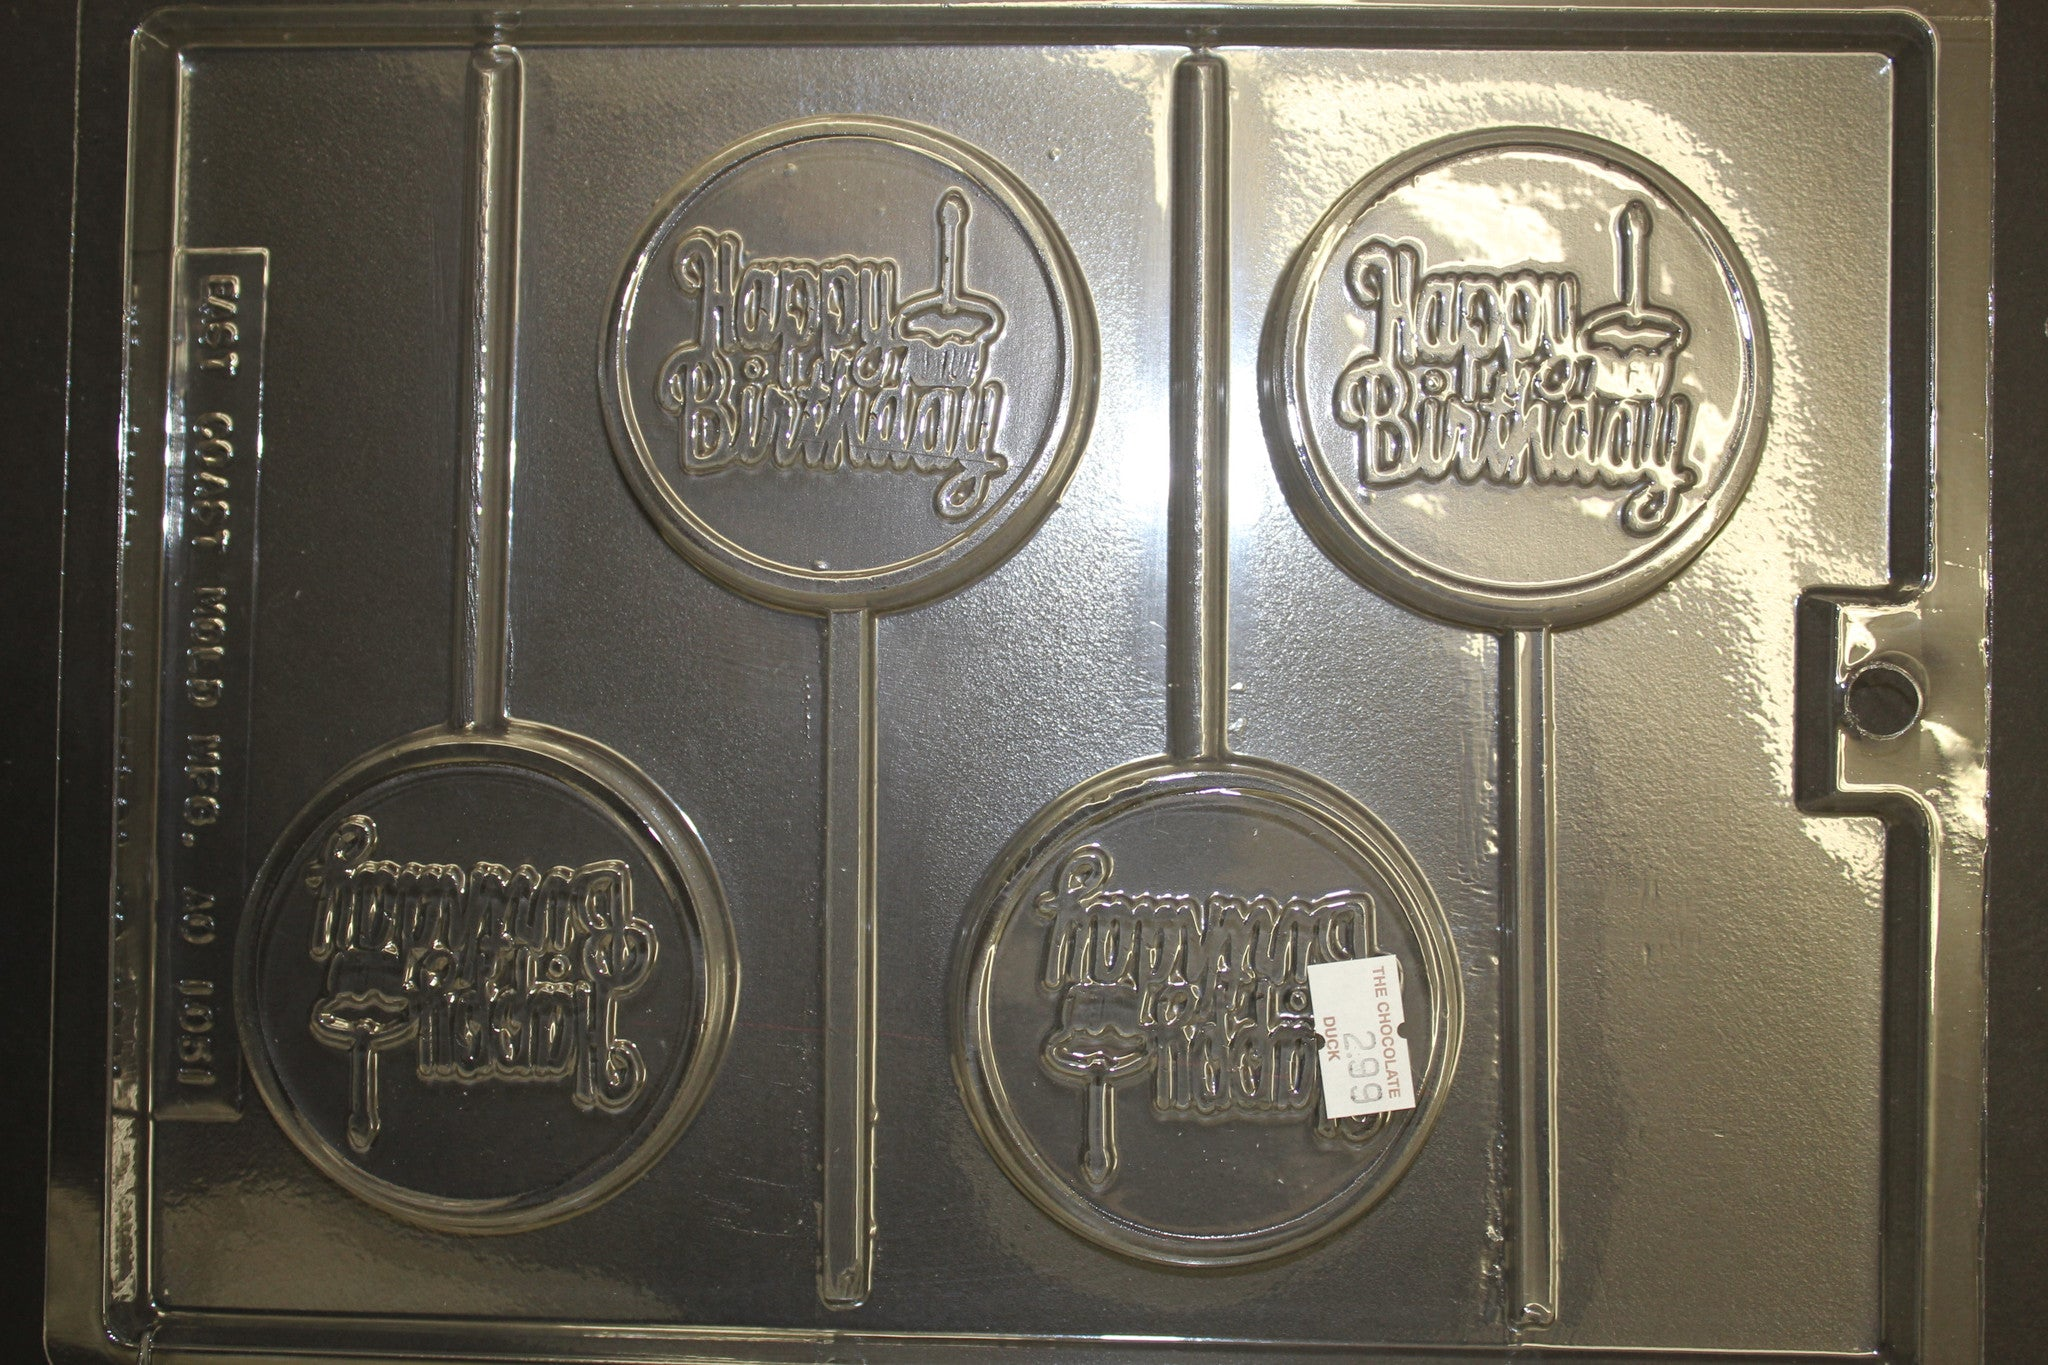 4 Happy Birthday with cake on Round Pops Candy Chocolate Mold